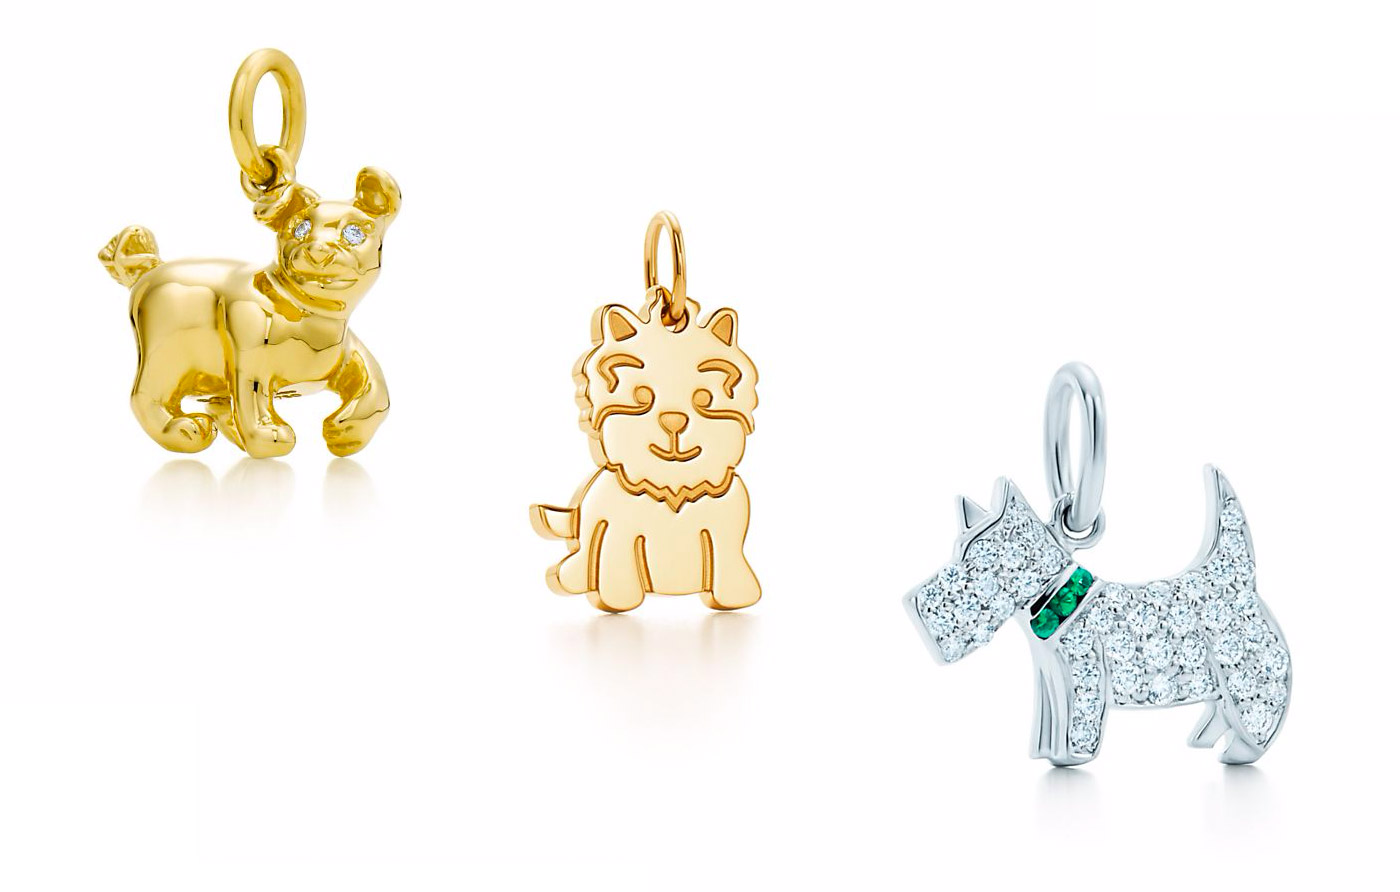 Tiffany&Co Paloma's Chinese Zodiac Dog Charm, New Yorkie charm in gold, Tsavorite Dog charm in white gold with diamonds